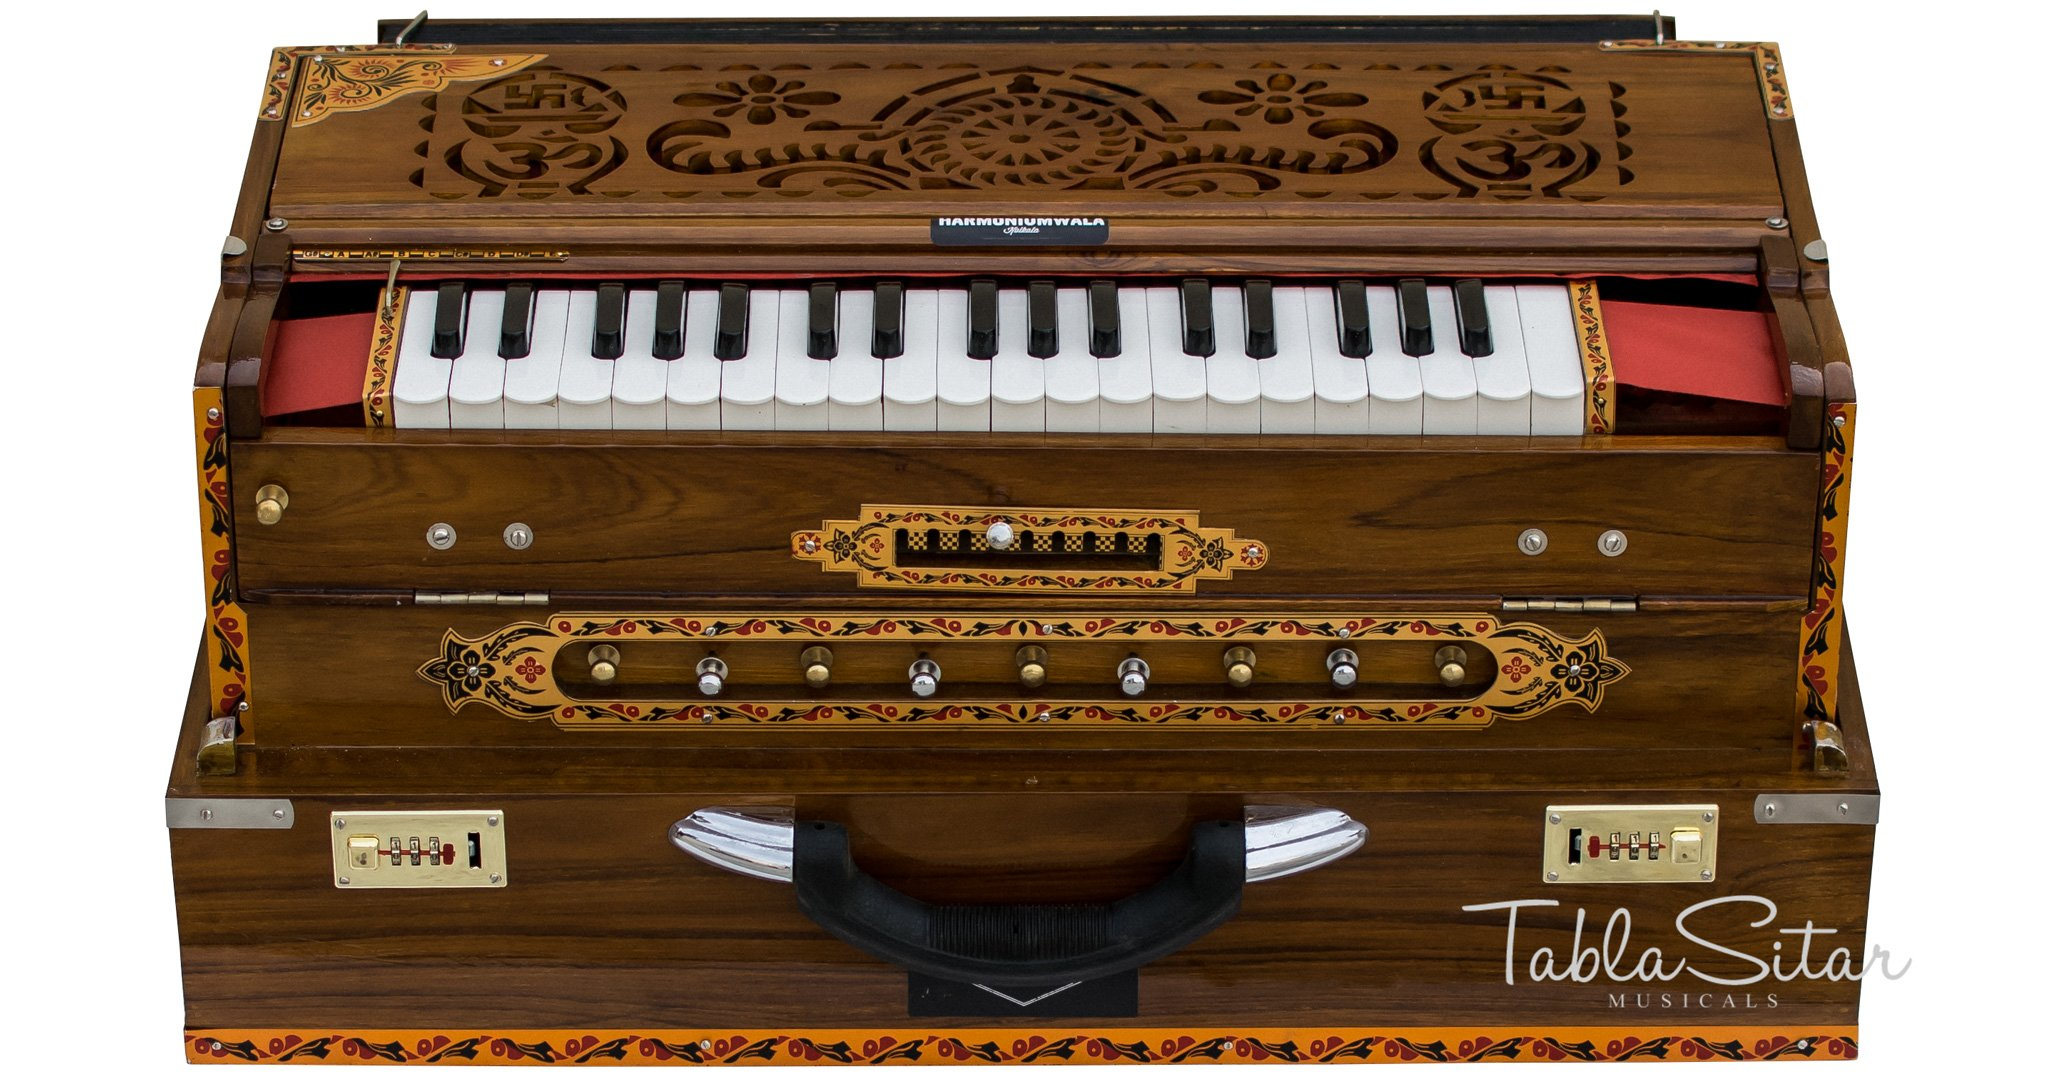 Scale Changer Harmonium, Maharaja Musicals, In USA, Triple Reed, 9 Scale Changer, 3 3/4 Octave, Natural, Teak Wood, Coupler, Book, Bag, Tuned to A440, Indian Musical Instrument Calcutta (PDI-AGI)